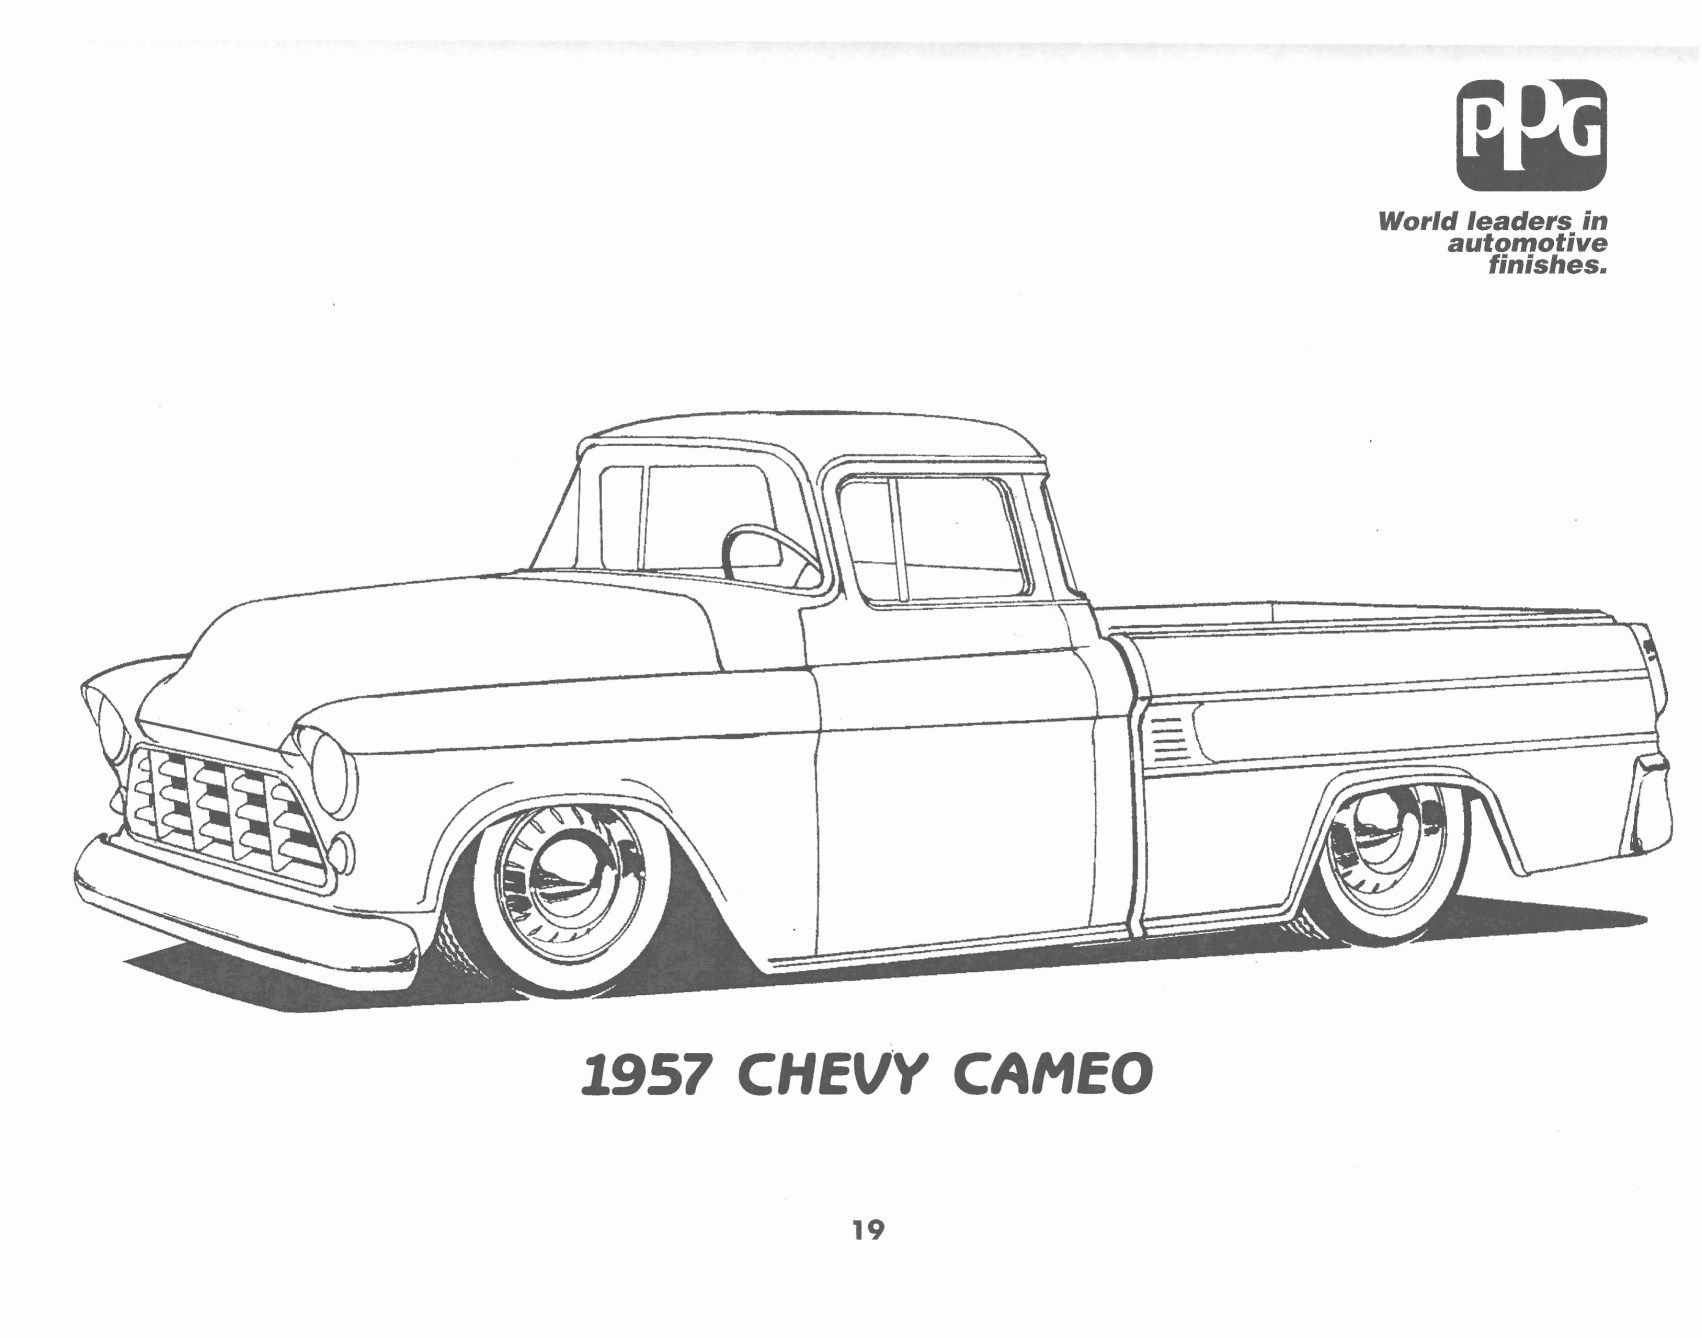 Brawny Muscle Car Coloring Pages American Muscle Cars - Cars ... | 1338x1702